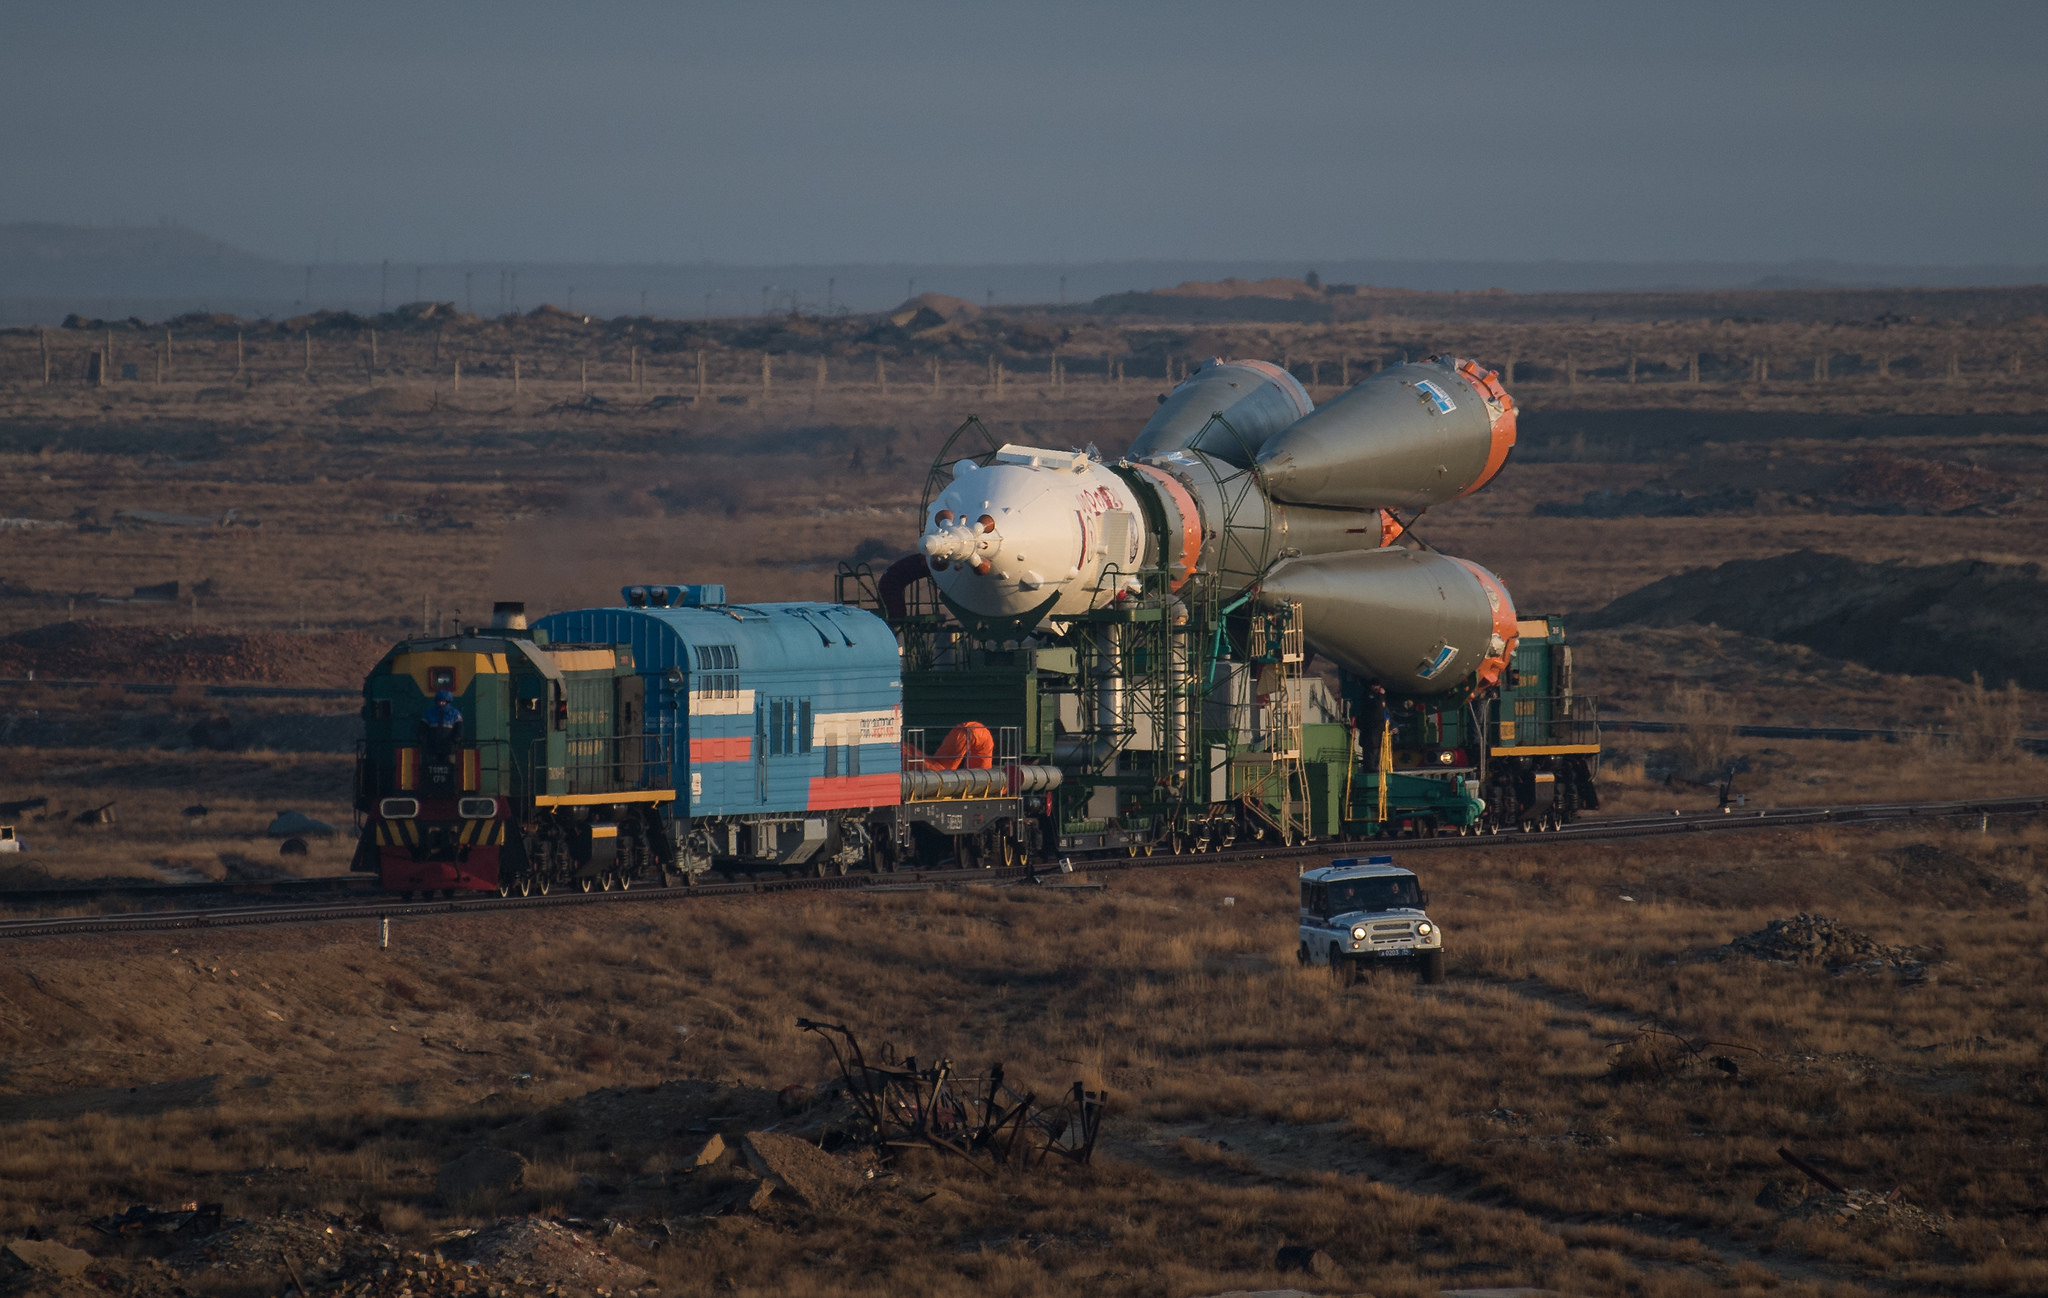 The Soyuz rocket is rolled to the launch pad on March 19, 2018. Credit: NASA/Joel Kowsky